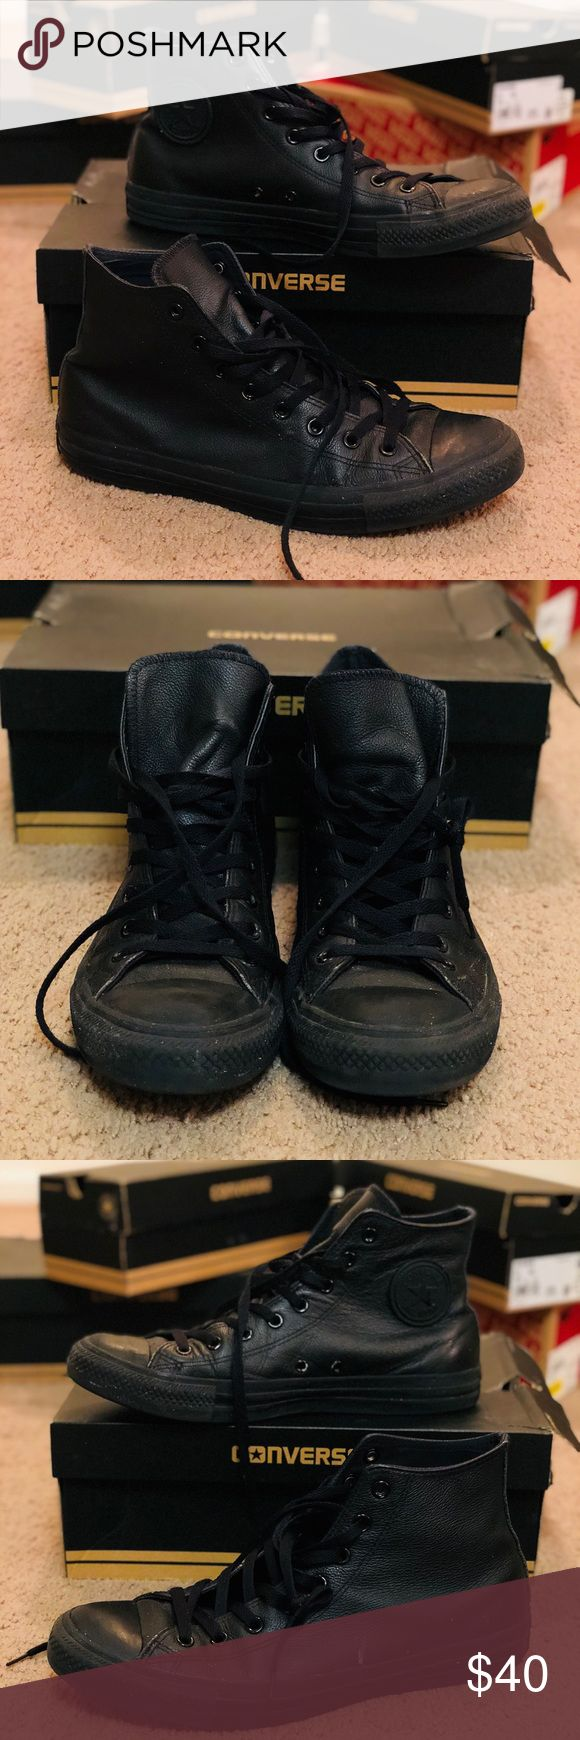 Chuck Taylor - Converse - Black Leather For sale is a used Chuck Taylor - Converse, Black (Leather) in Men's US sz 11 (Women's US sz 13). Style Code: 1T405. See pictures for condition. Additional photos available upon request. Converse Shoes Sneakers